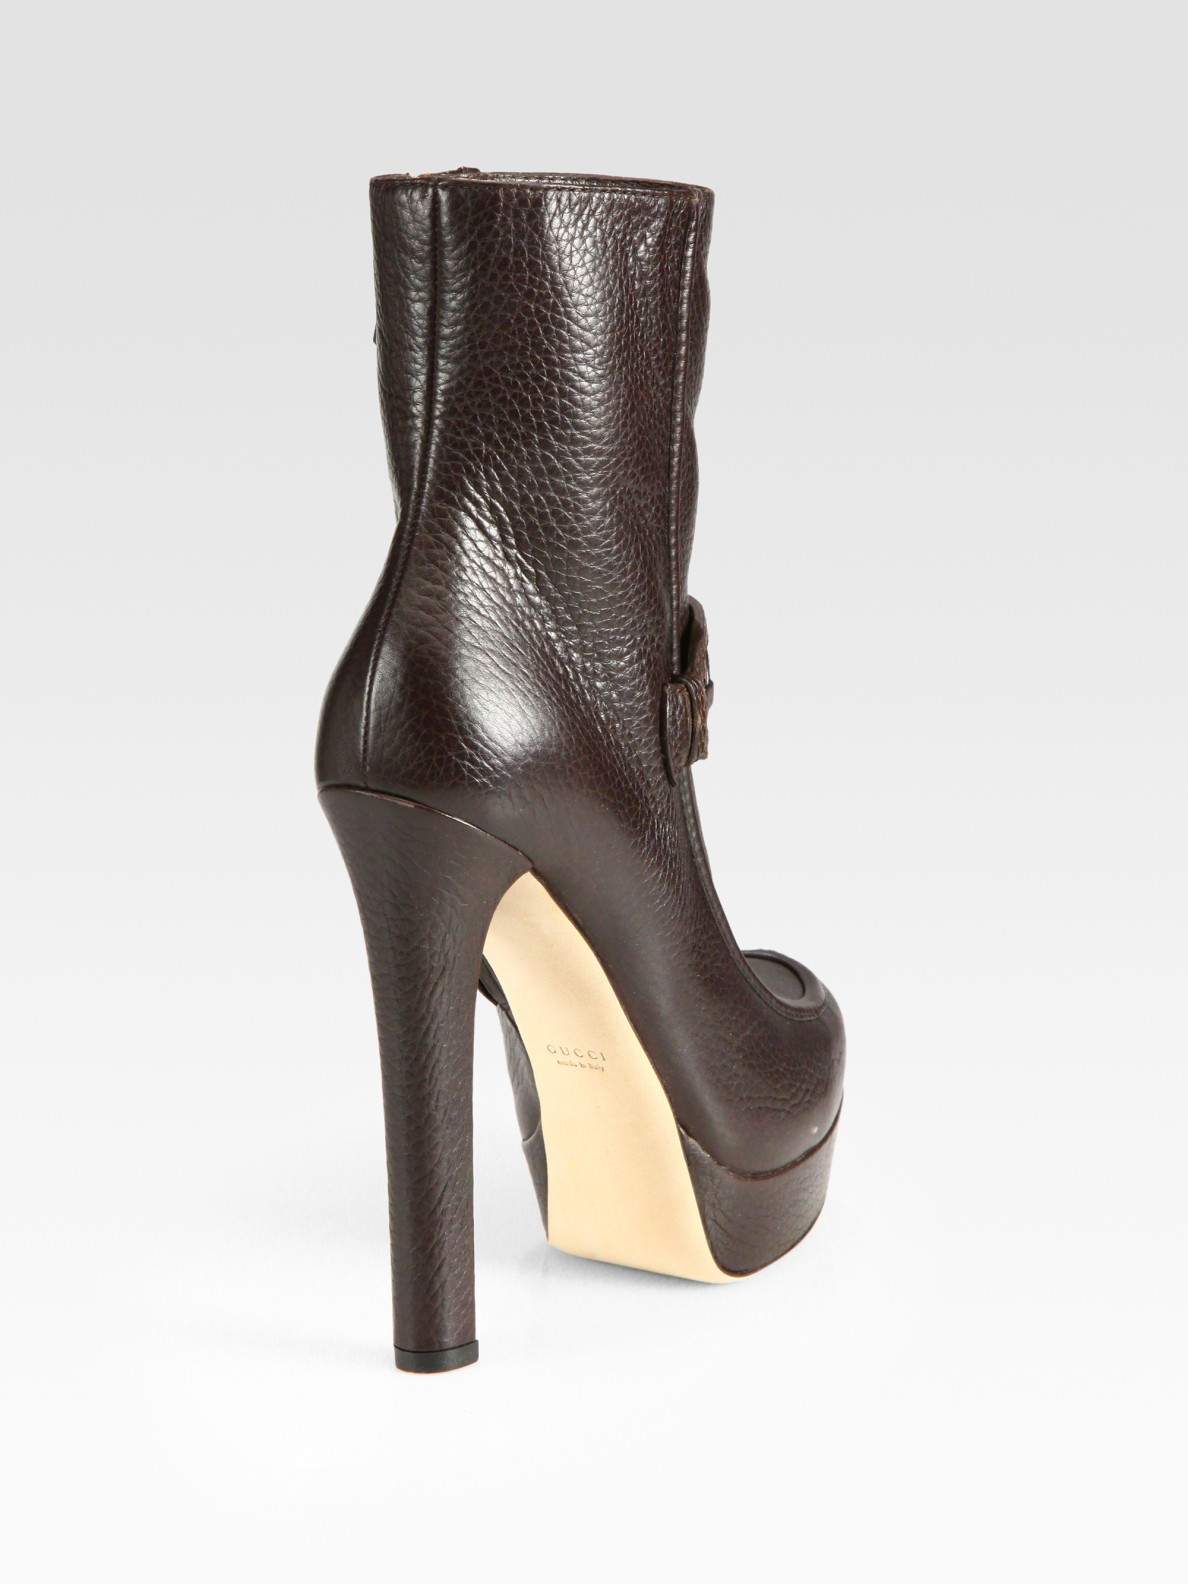 a5baf9071d65 Lyst - Gucci Athina Platform Leather Ankle Boots in Brown